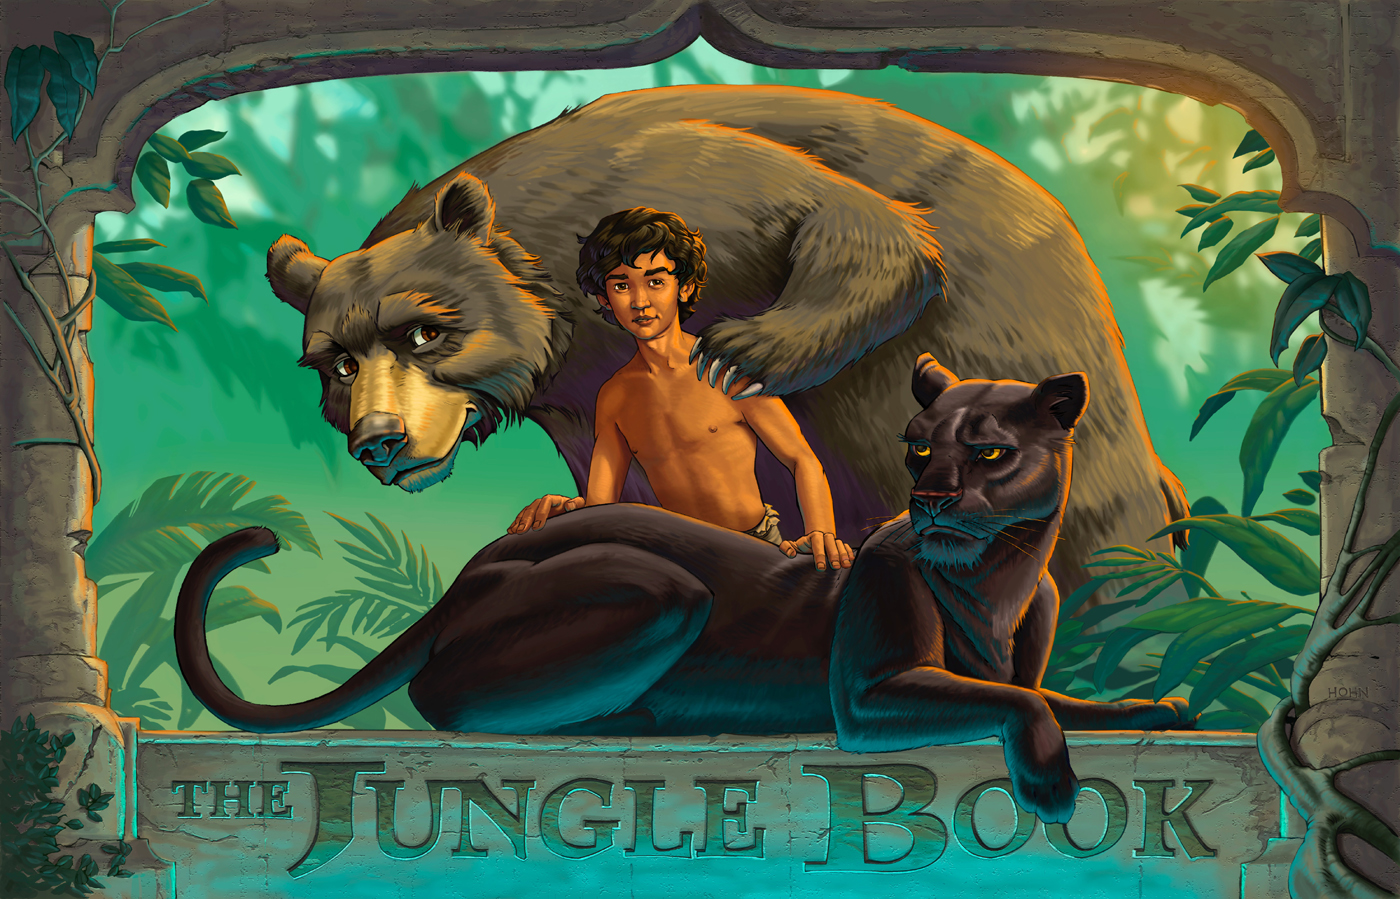 Ready help Jungle book cartoon porn apologise, but